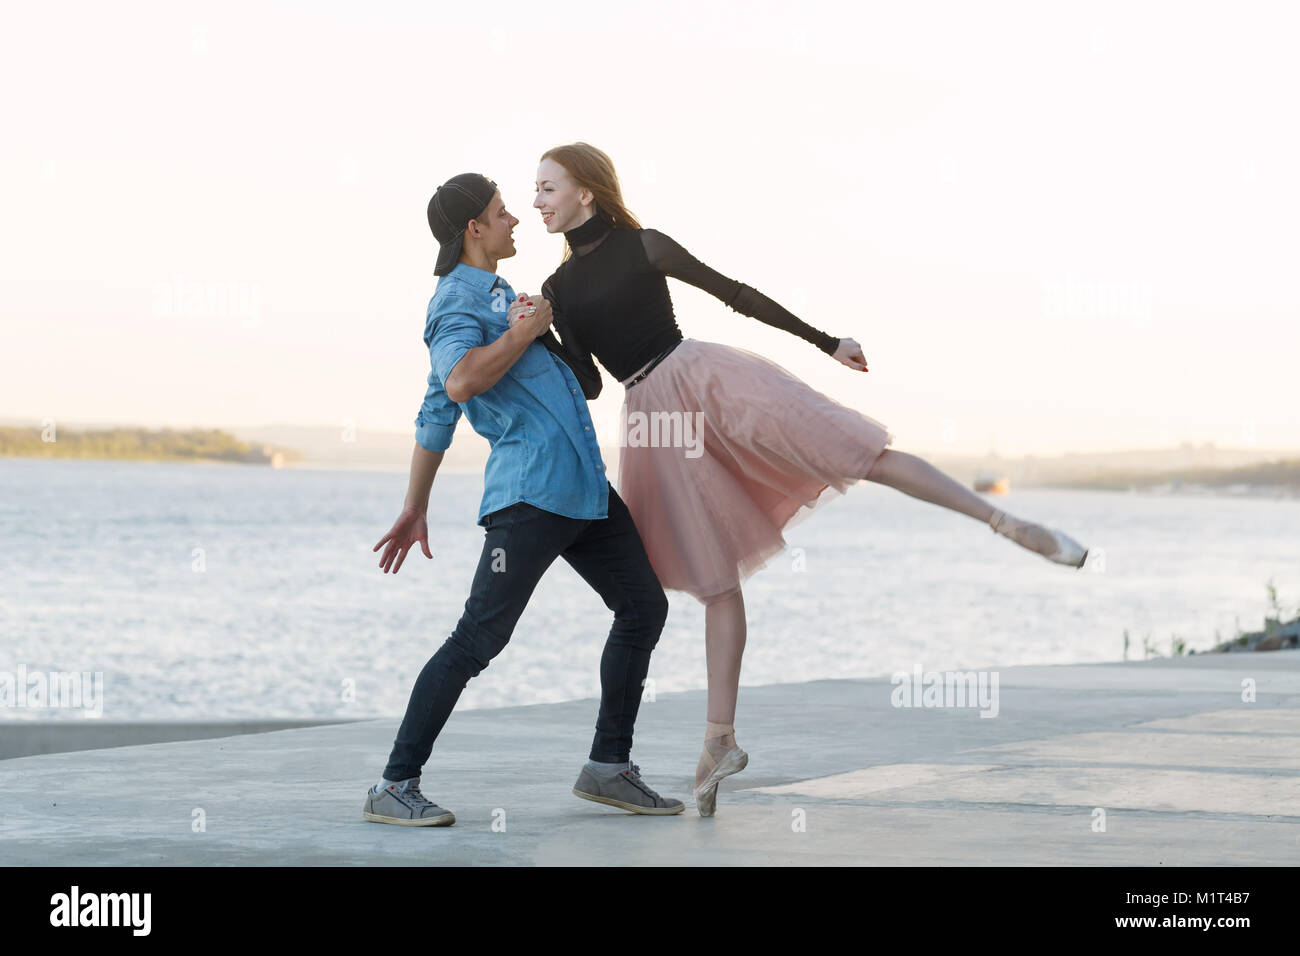 A slender ballerina dances with a modern dancer. Dating lovers. Passion and romance of dance. He holds her hand. - Stock Image